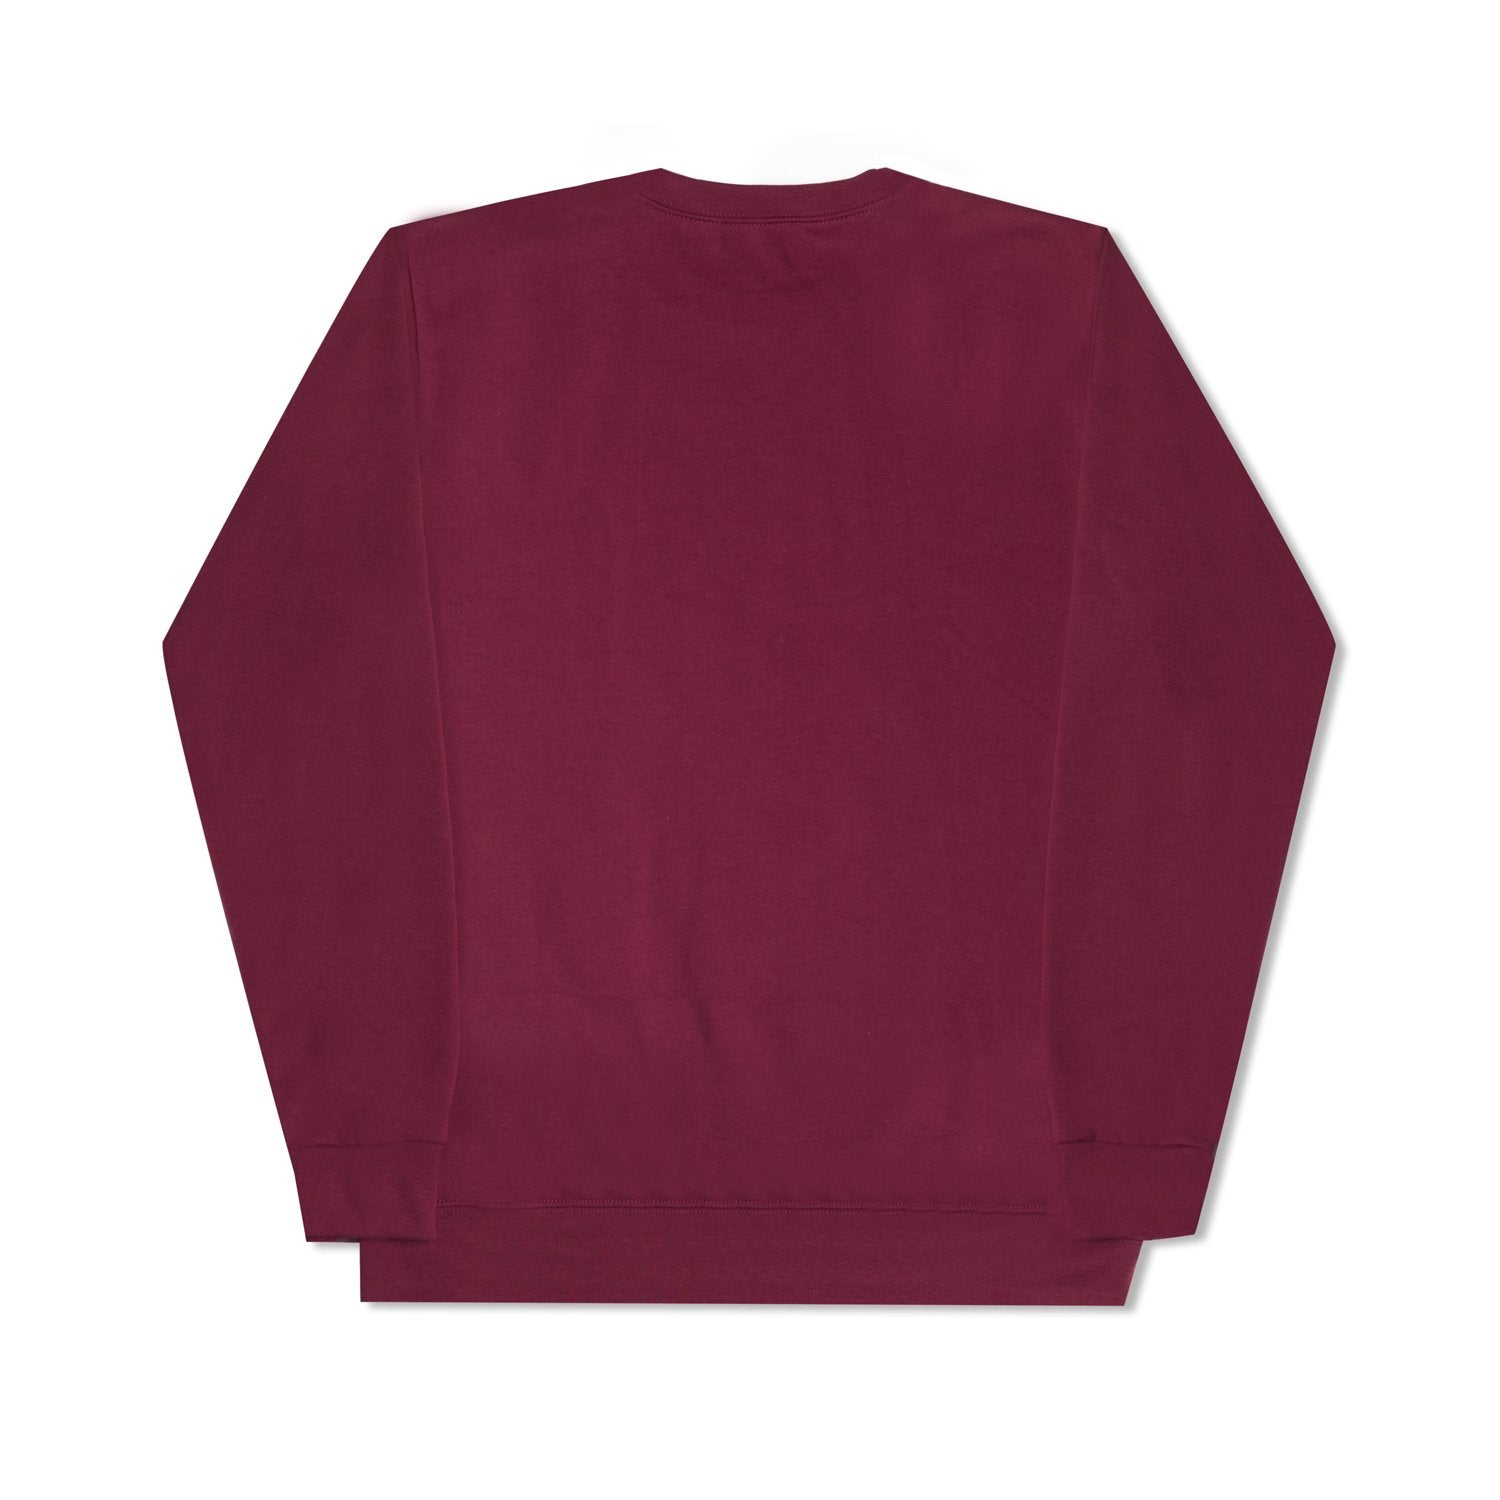 Melbourne's Better Crewneck